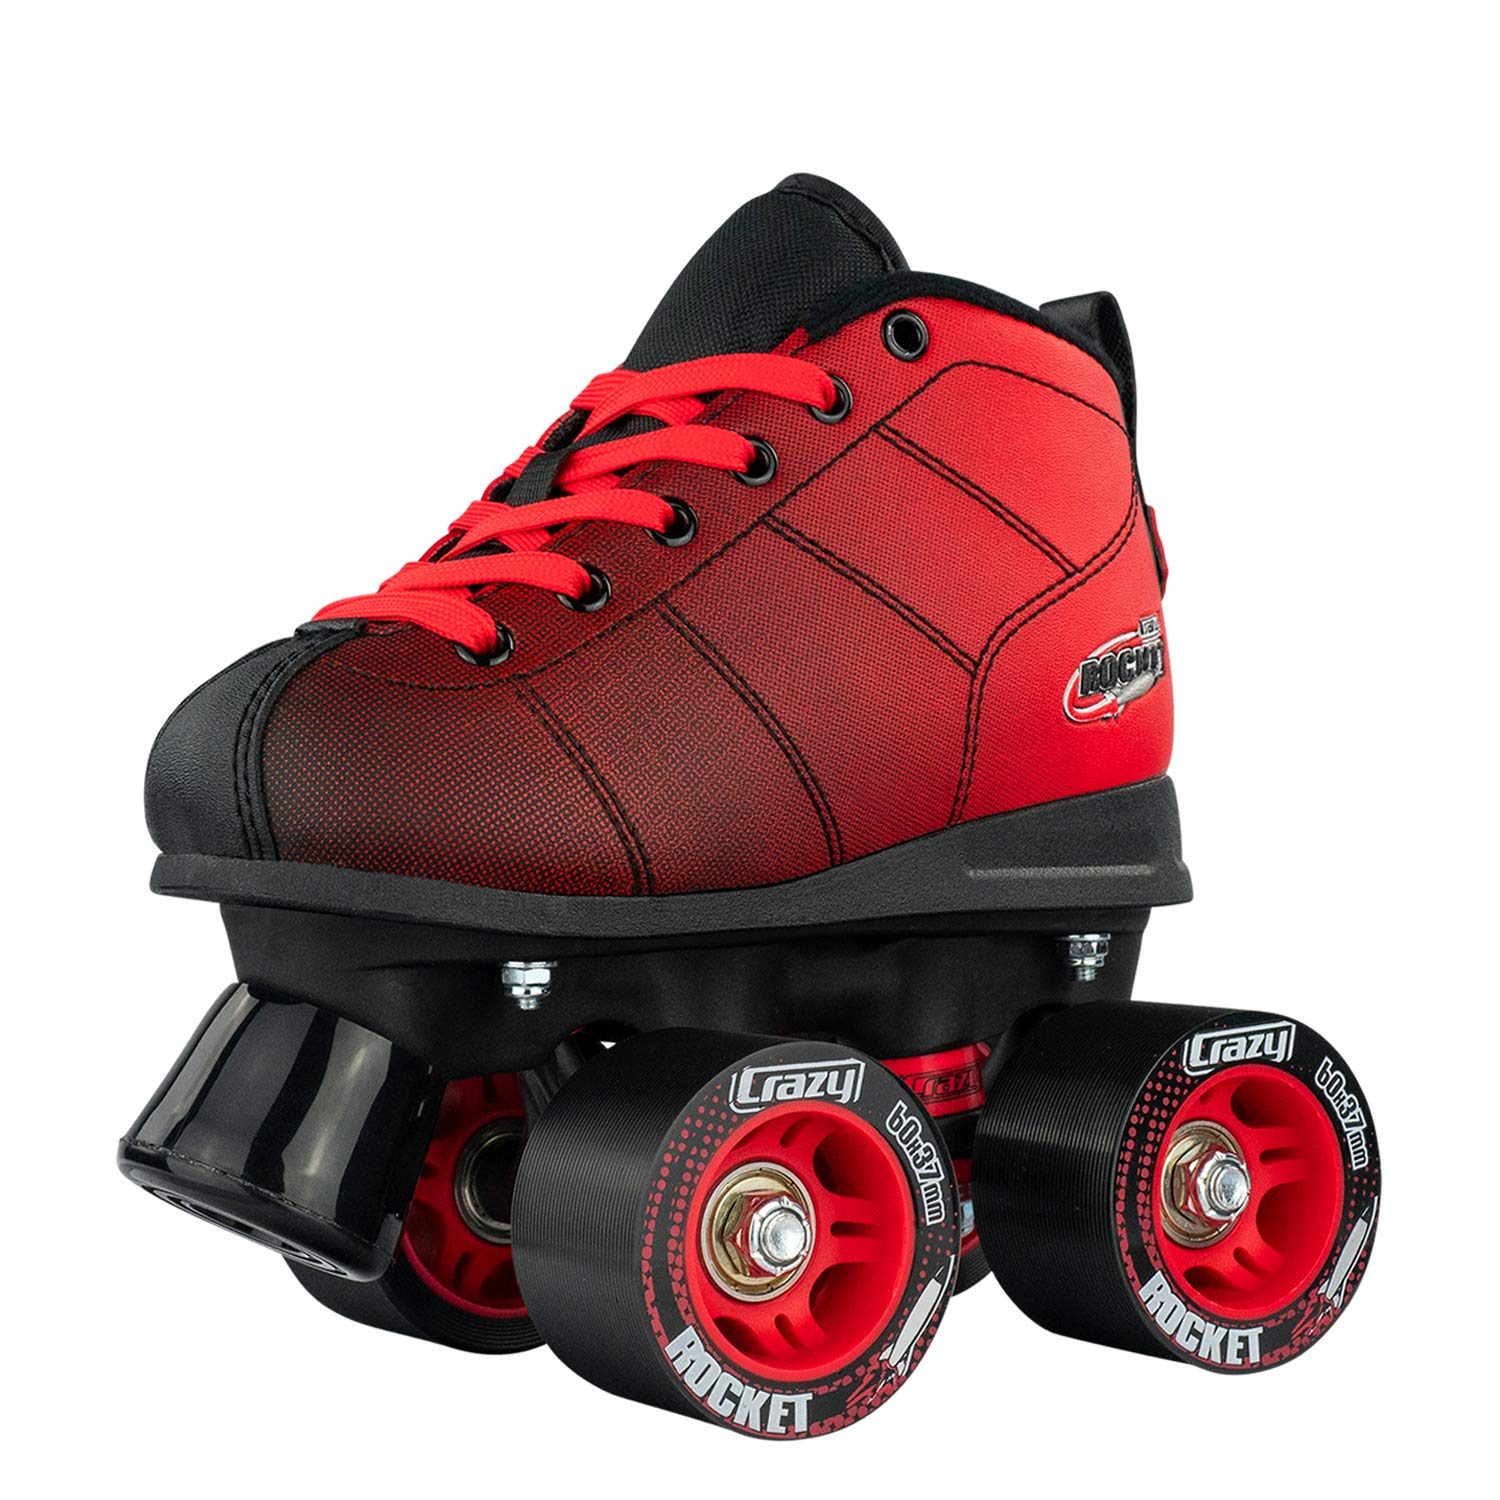 Crazy Skates Rocket Roller Skates for Boys and Girls